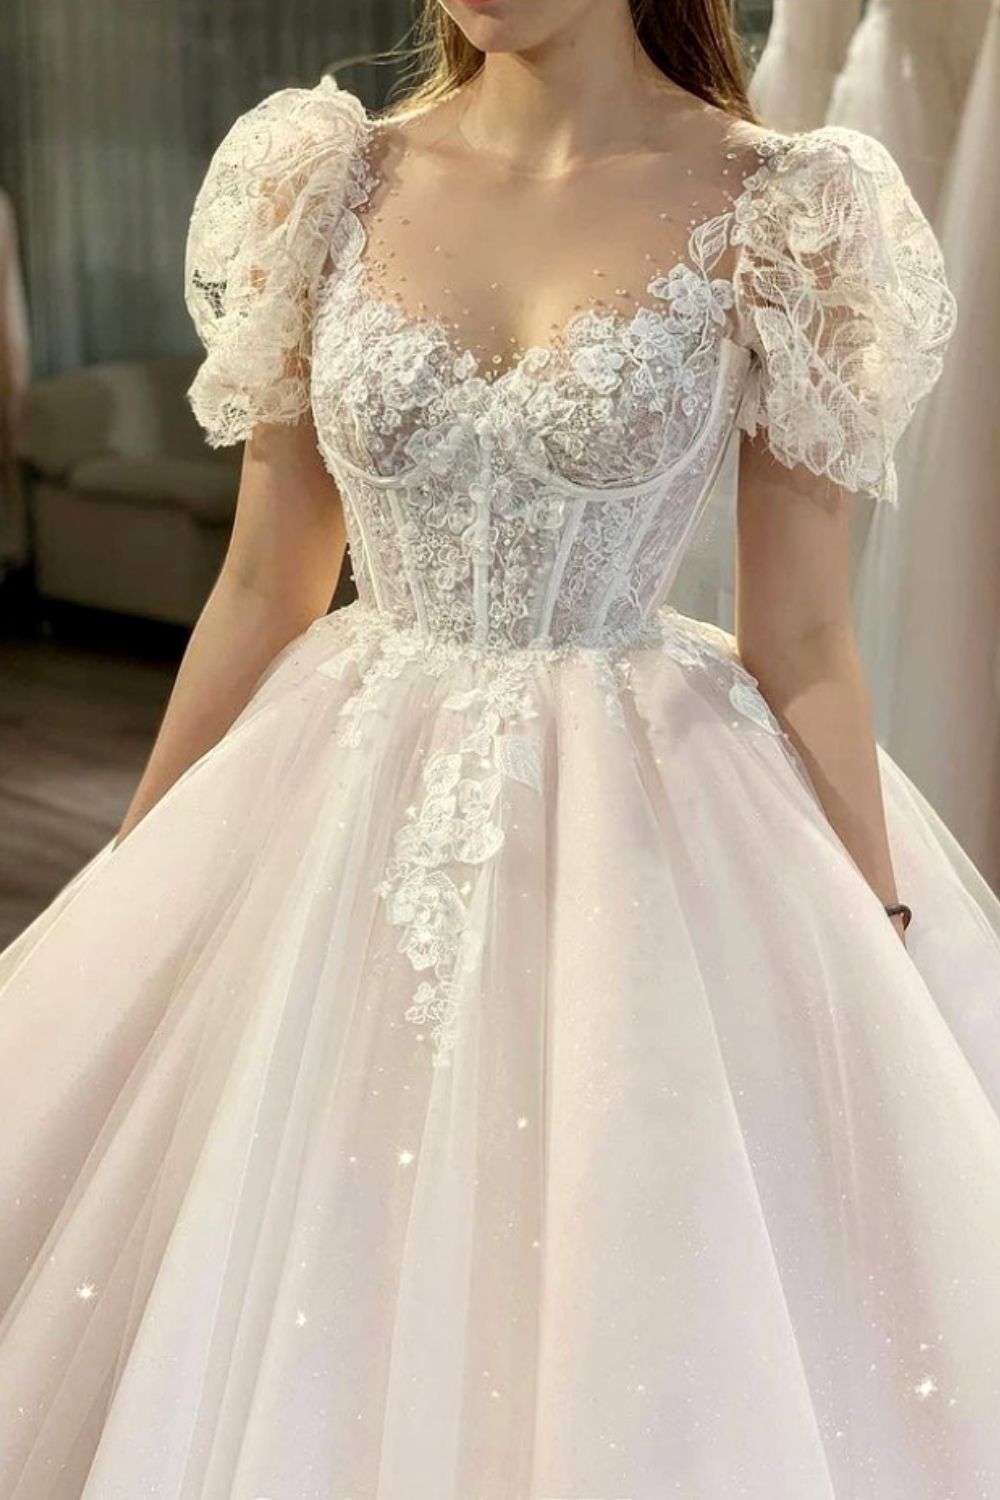 21+ Princess Wedding Dress Ideas & Trends 2021 You